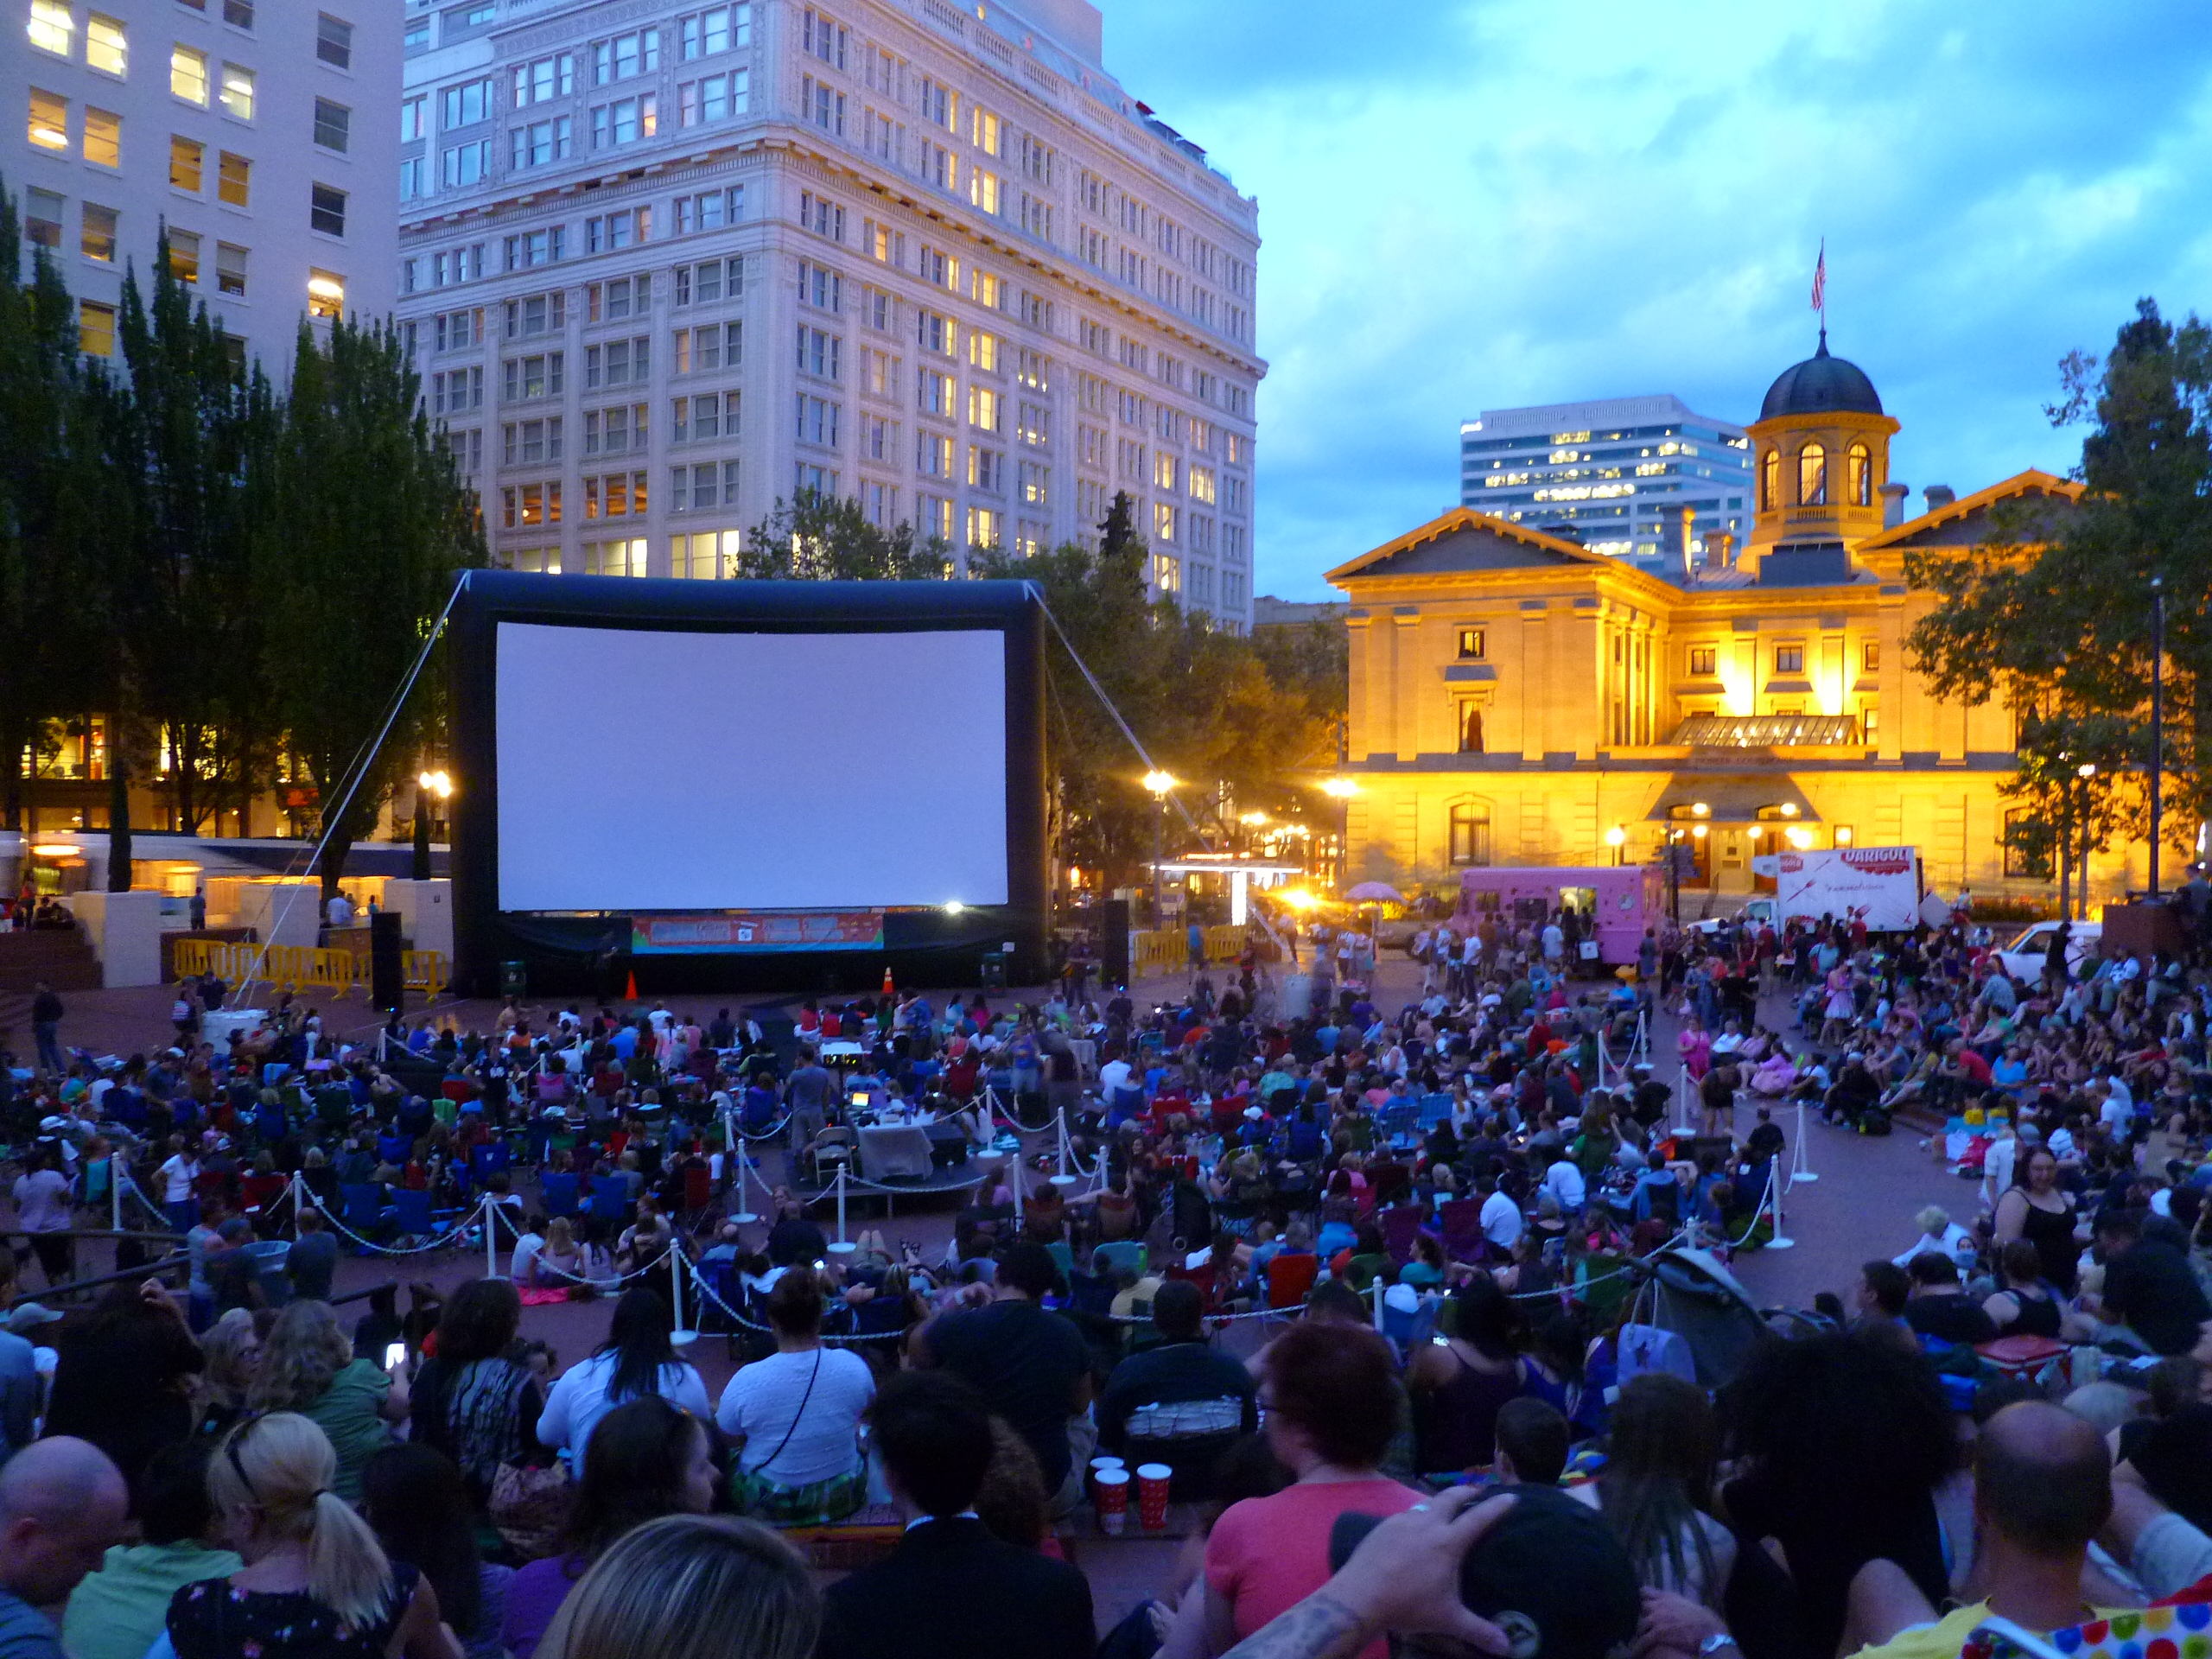 Epic Events - Outdoor Cinema Rentals